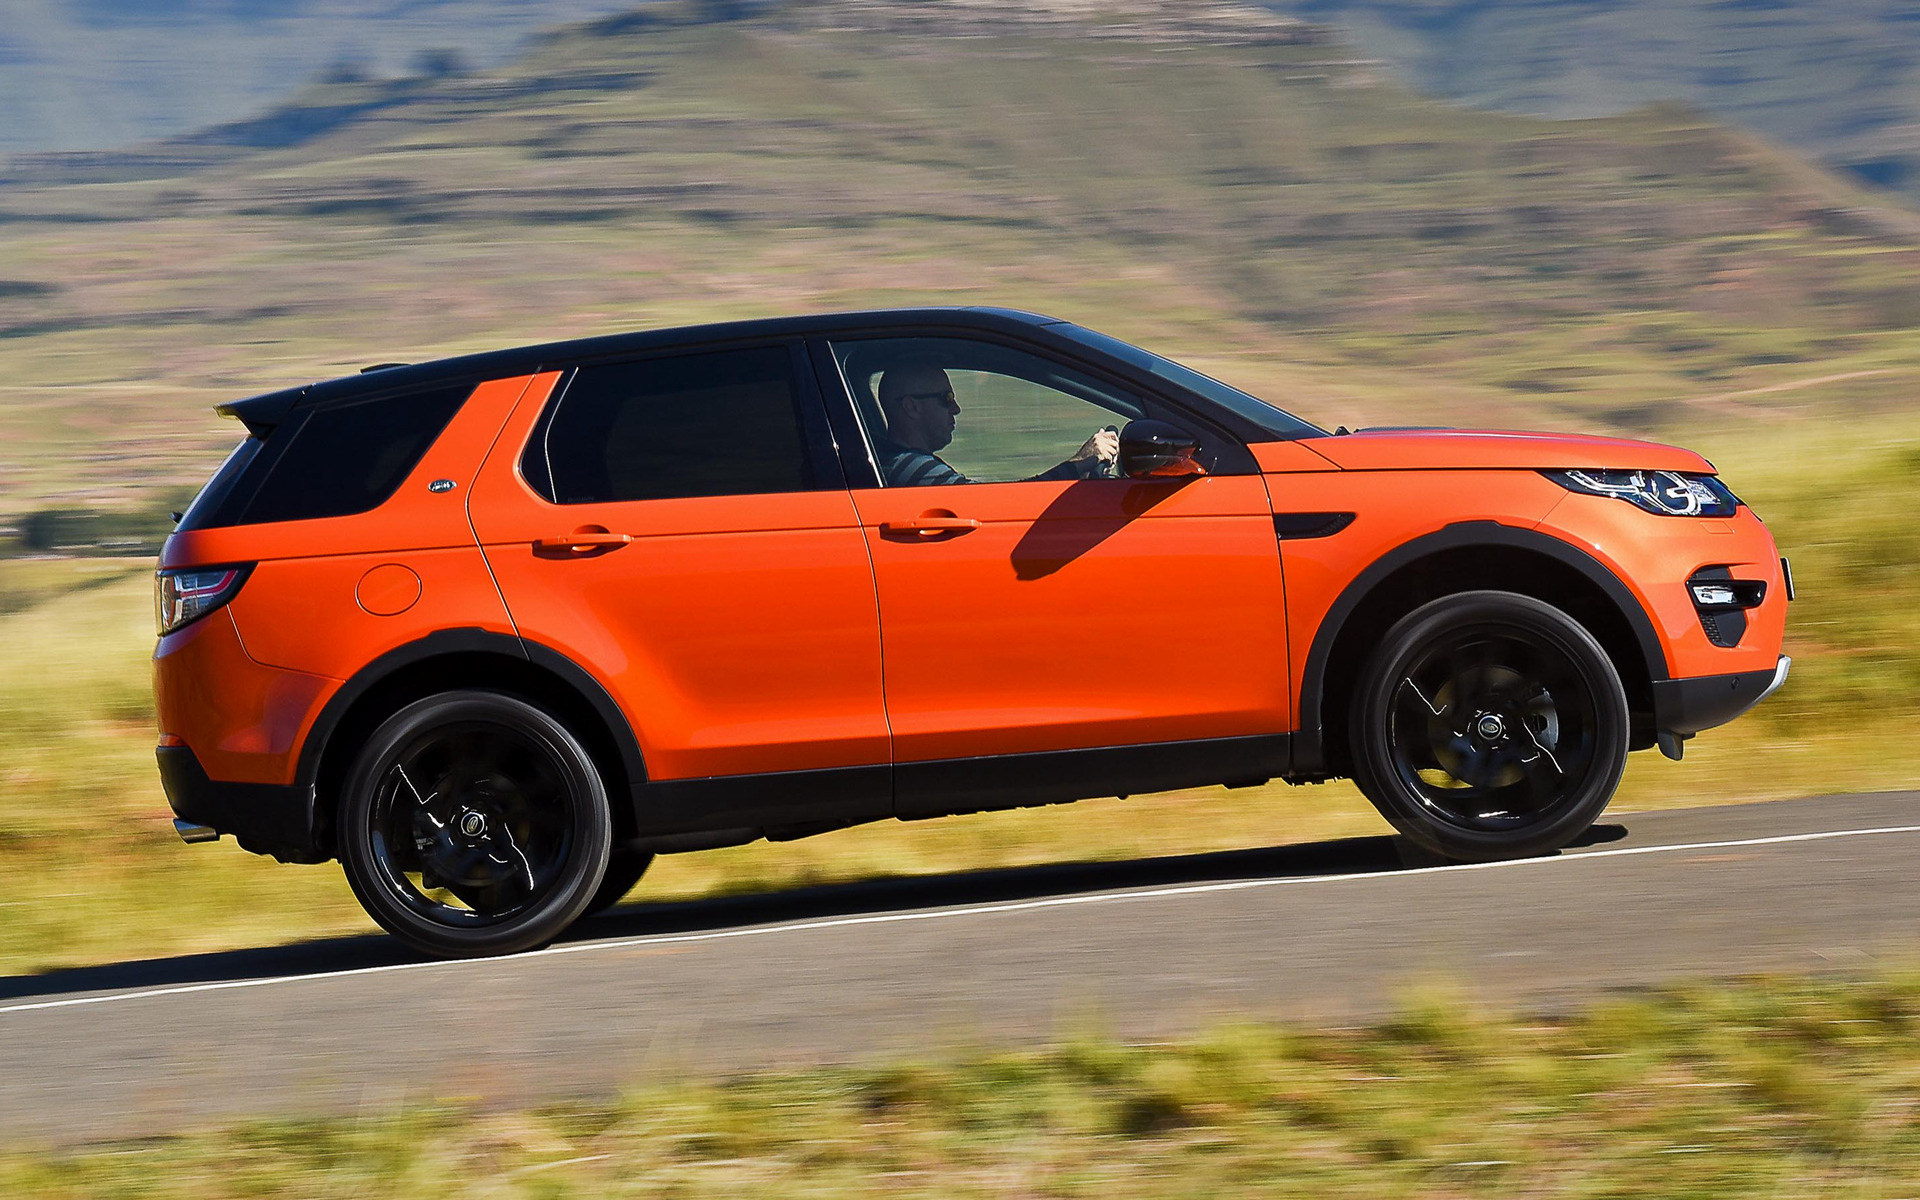 https://www.carpixel.net/w/38b47f45cf22994d4cc0f6dfa3e2021c/land-rover-discovery-sport-hse-luxury-black-design-pack-car-wallpaper-36753.jpg